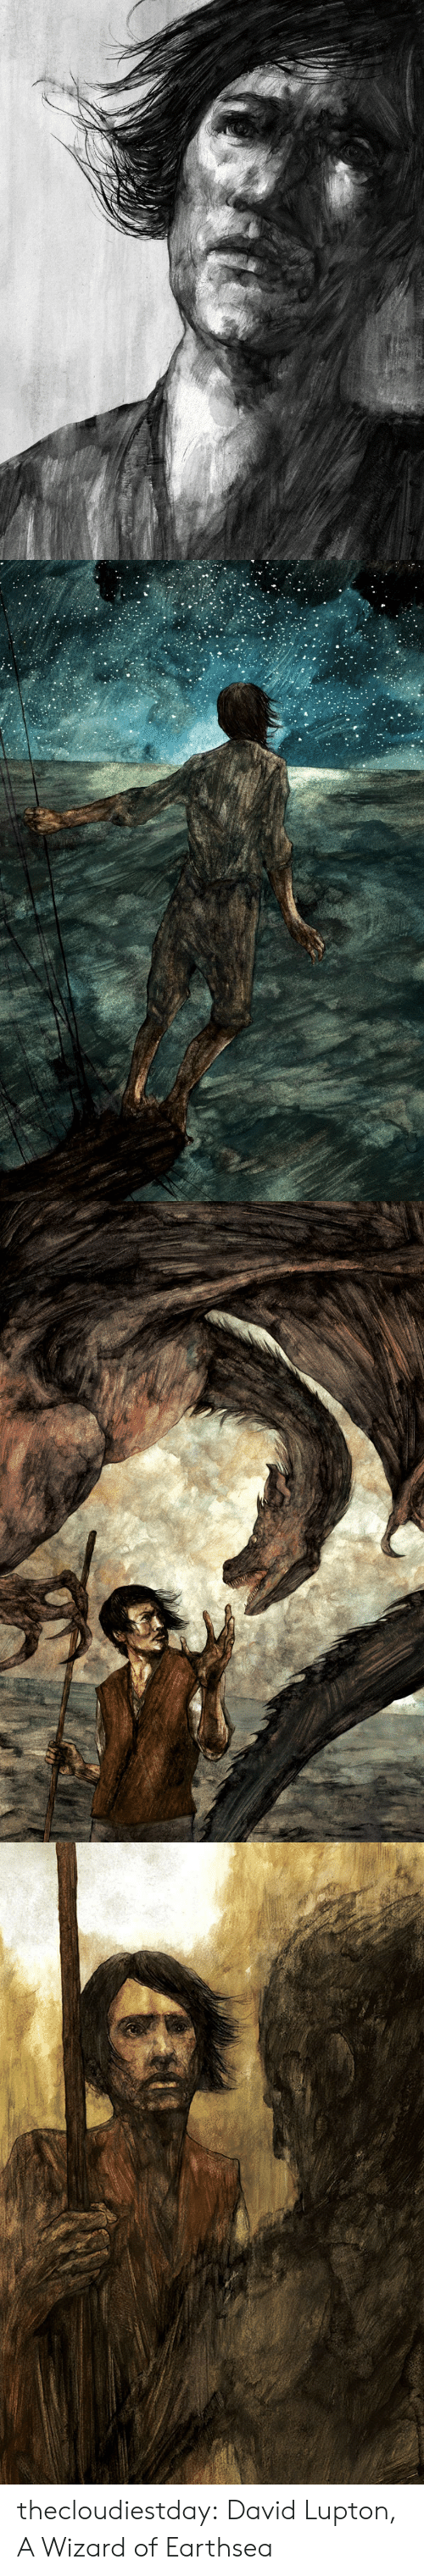 Tumblr, Blog, and Wizard: thecloudiestday: David Lupton, A Wizard of Earthsea